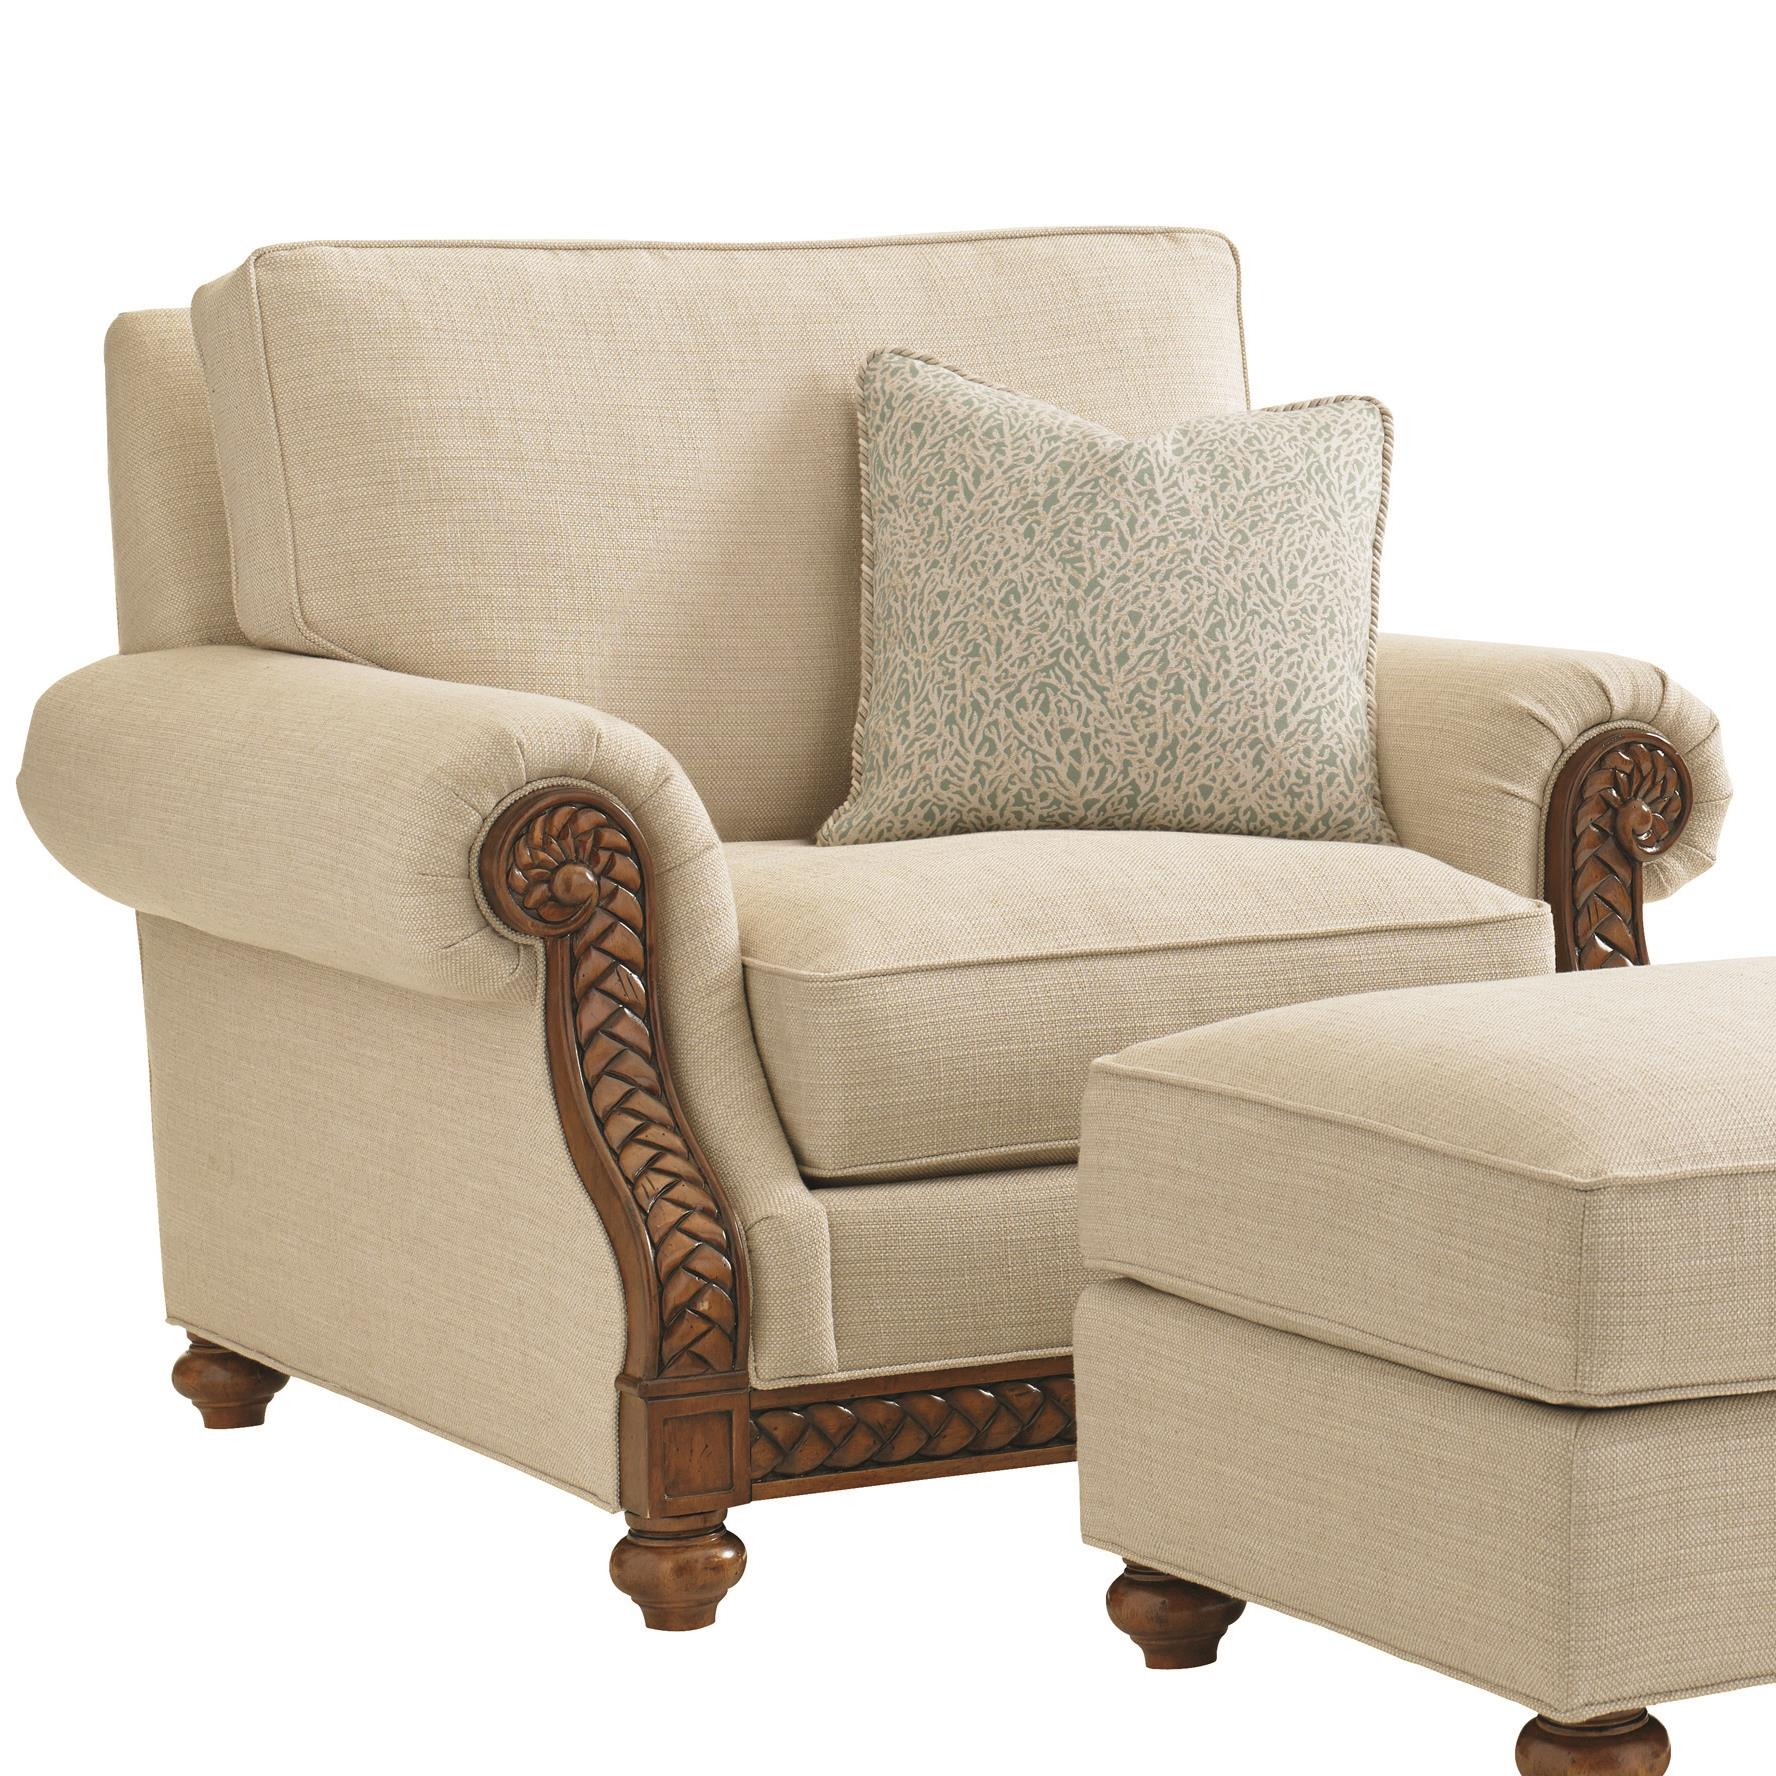 Bali Hai Quickship Shoreline Chair by Tommy Bahama Home at Baer's Furniture